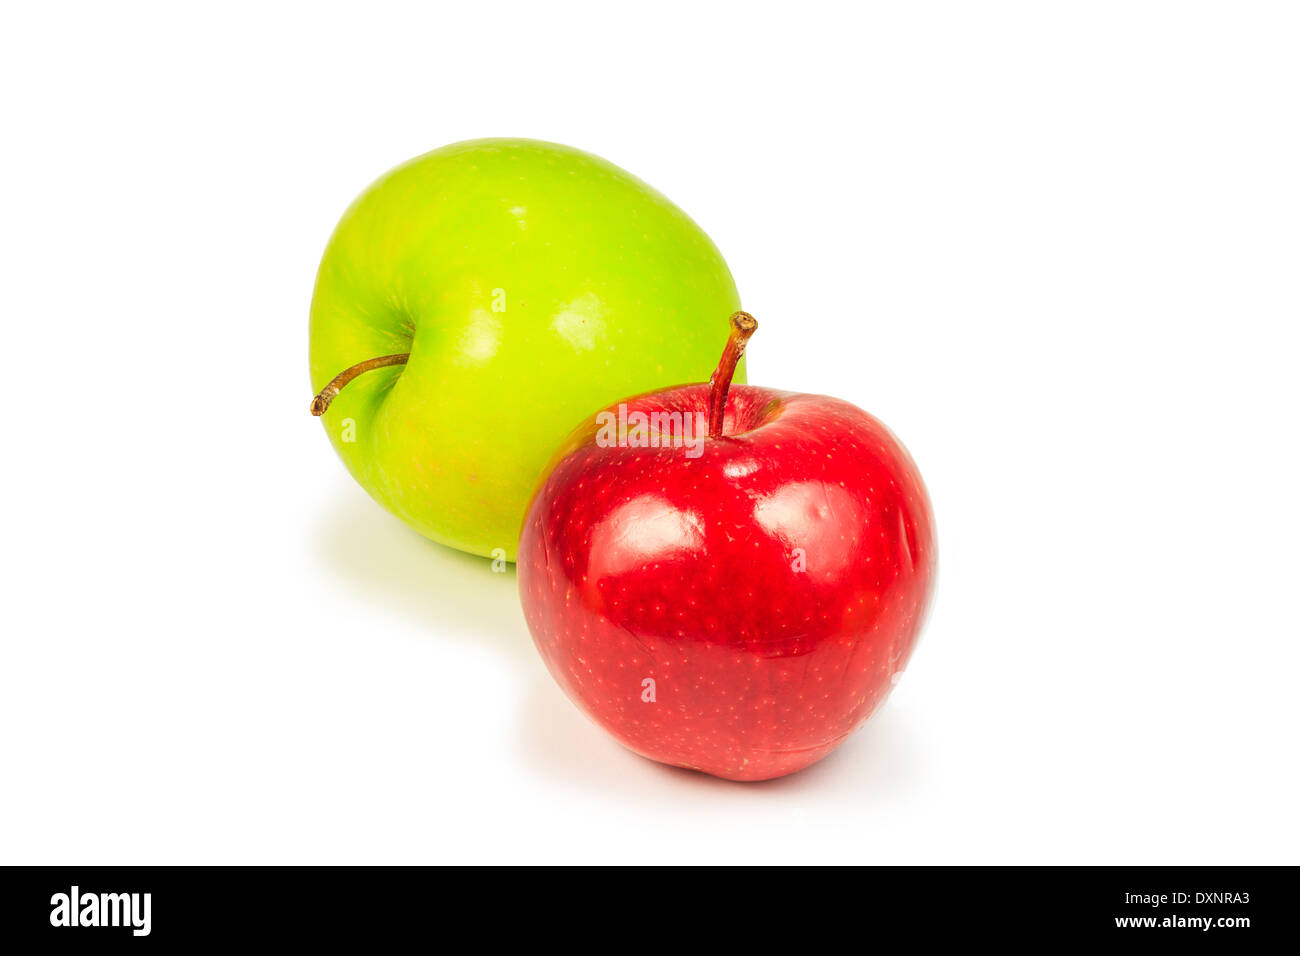 Ripe red and green apple isolated on white background - Stock Image